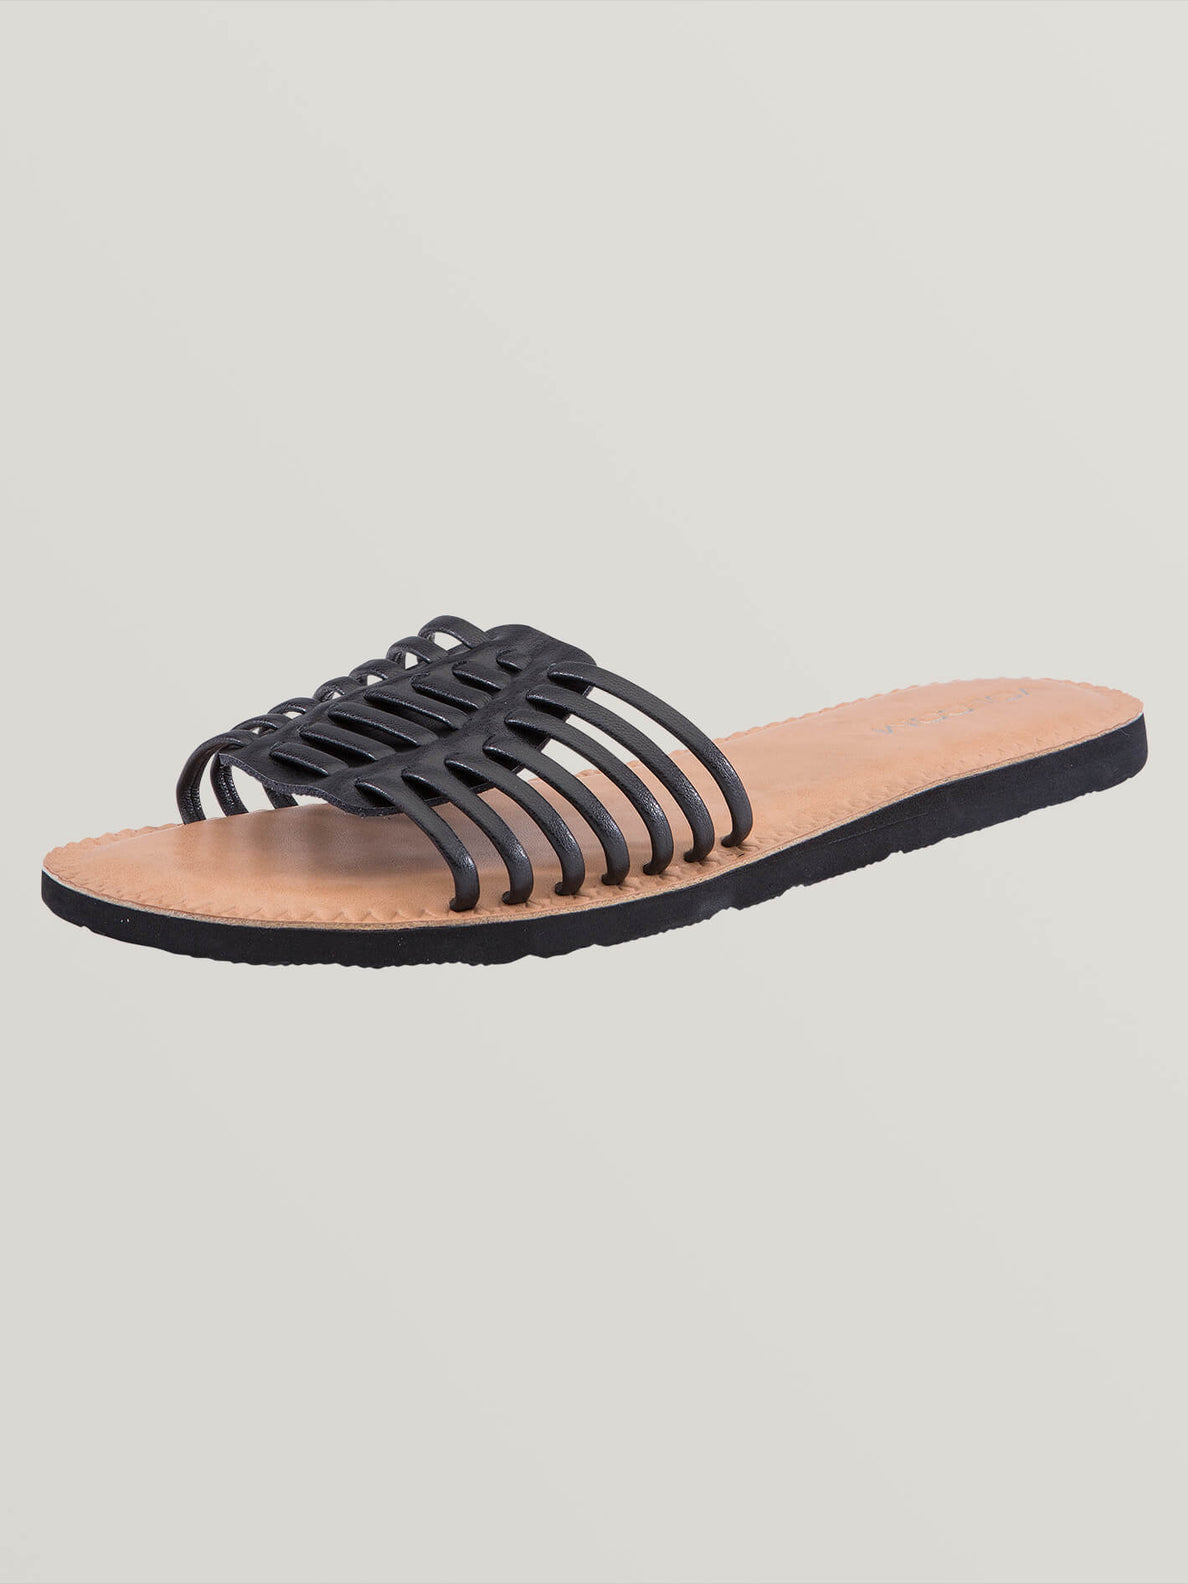 Porto Sandals In Black, Back View